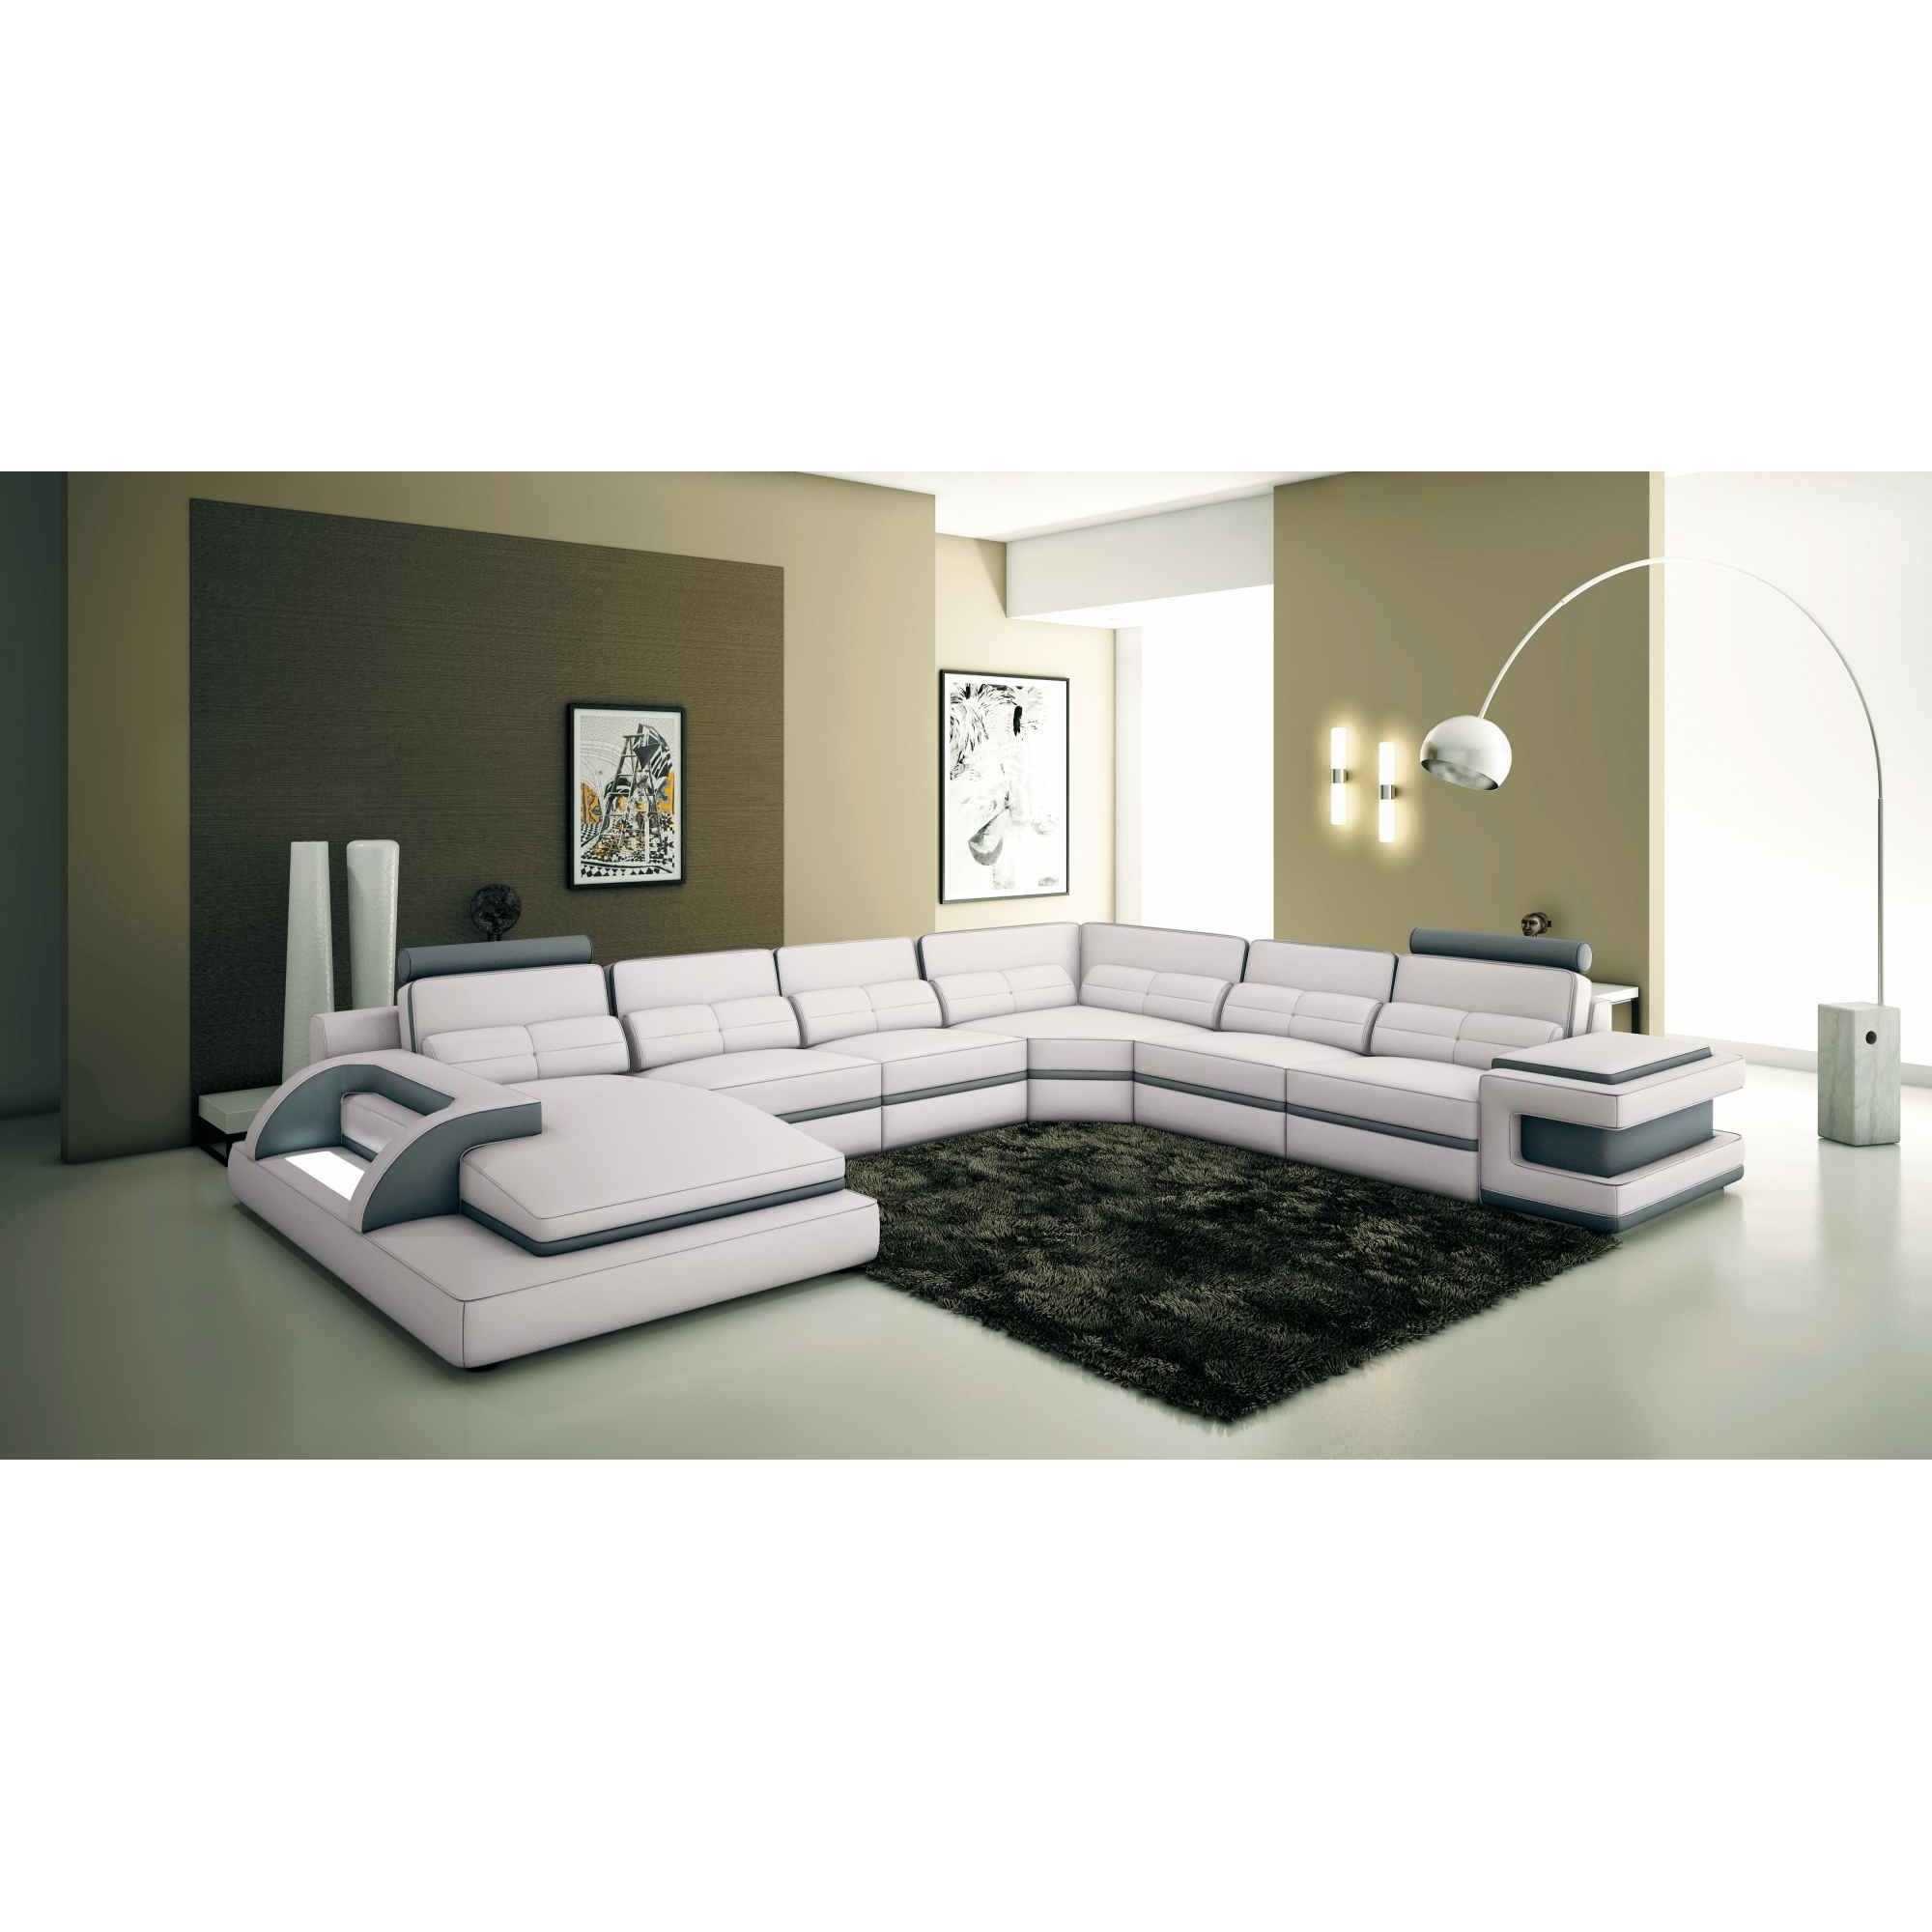 deco in paris 5 canape panoramique cuir blanc et gris design avec lumiere ibiza panoramique. Black Bedroom Furniture Sets. Home Design Ideas